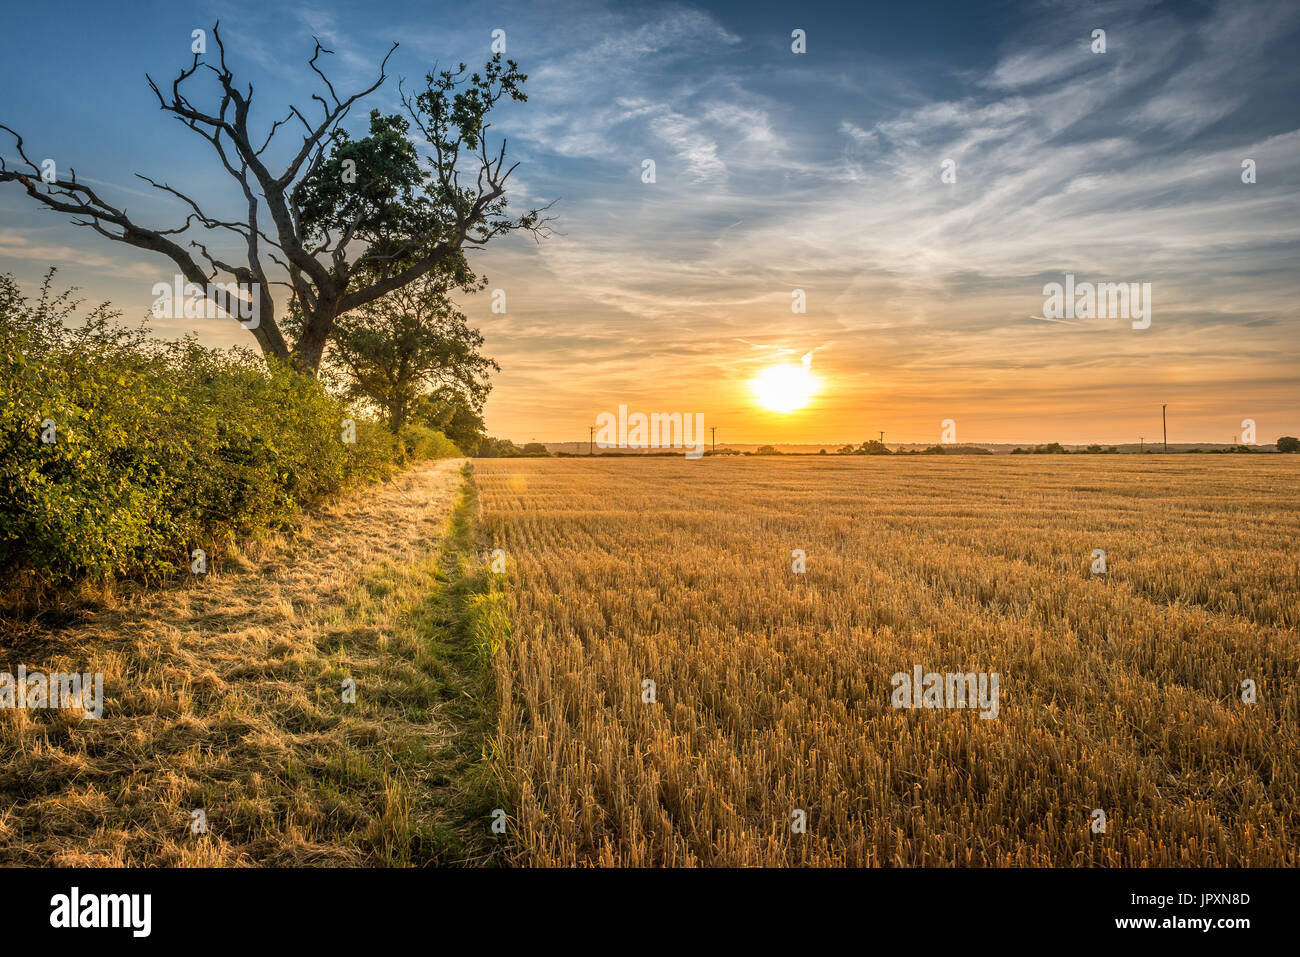 Early evening and the sun begins to set over farmed agricultural land in the Lincolnshire Fens Stock Photo